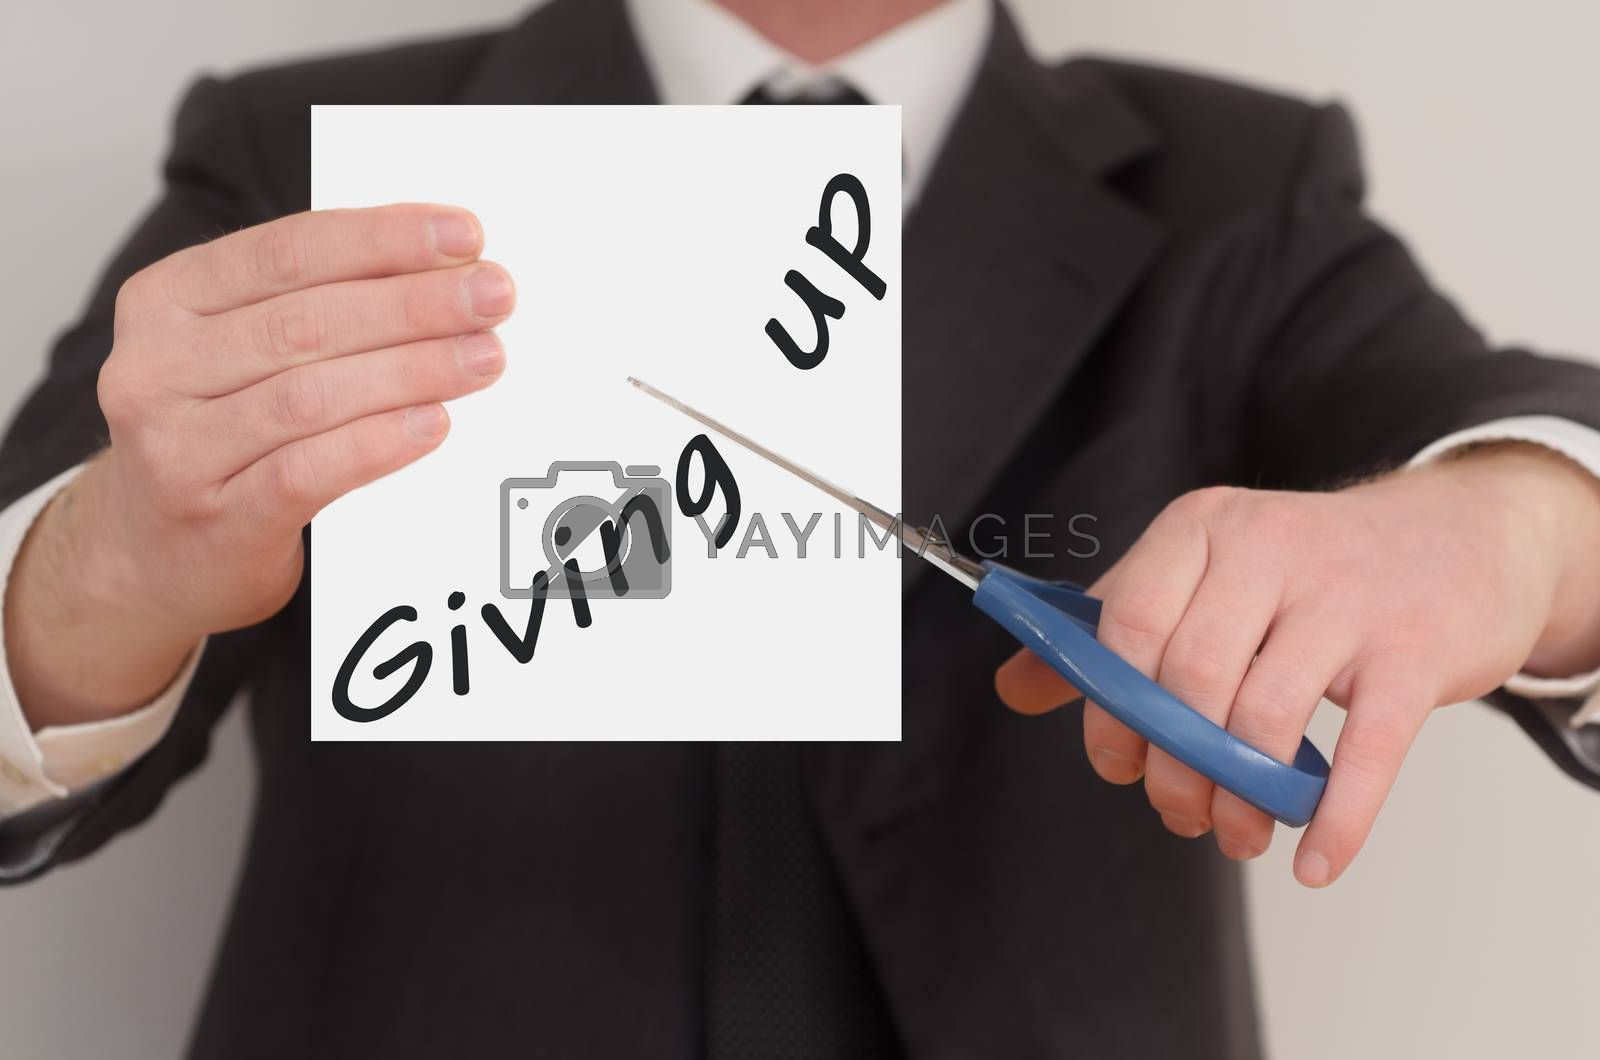 Giving up, man in suit cutting text on paper with scissors